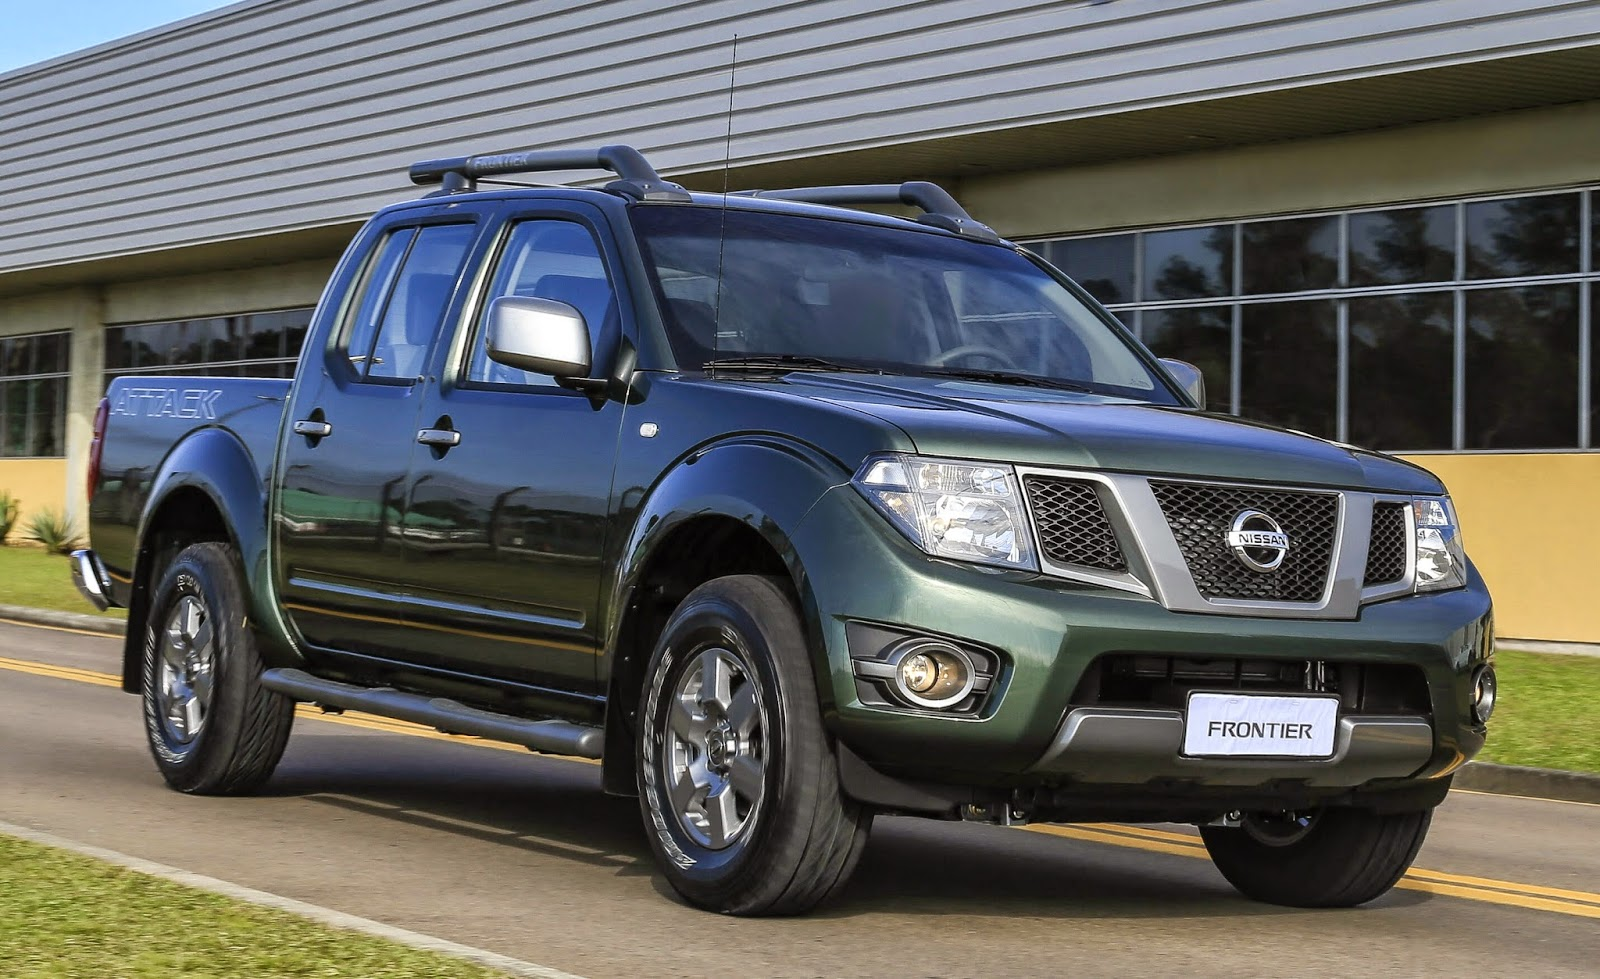 nissan apresenta linha 2015 da frontier mais equipada. Black Bedroom Furniture Sets. Home Design Ideas